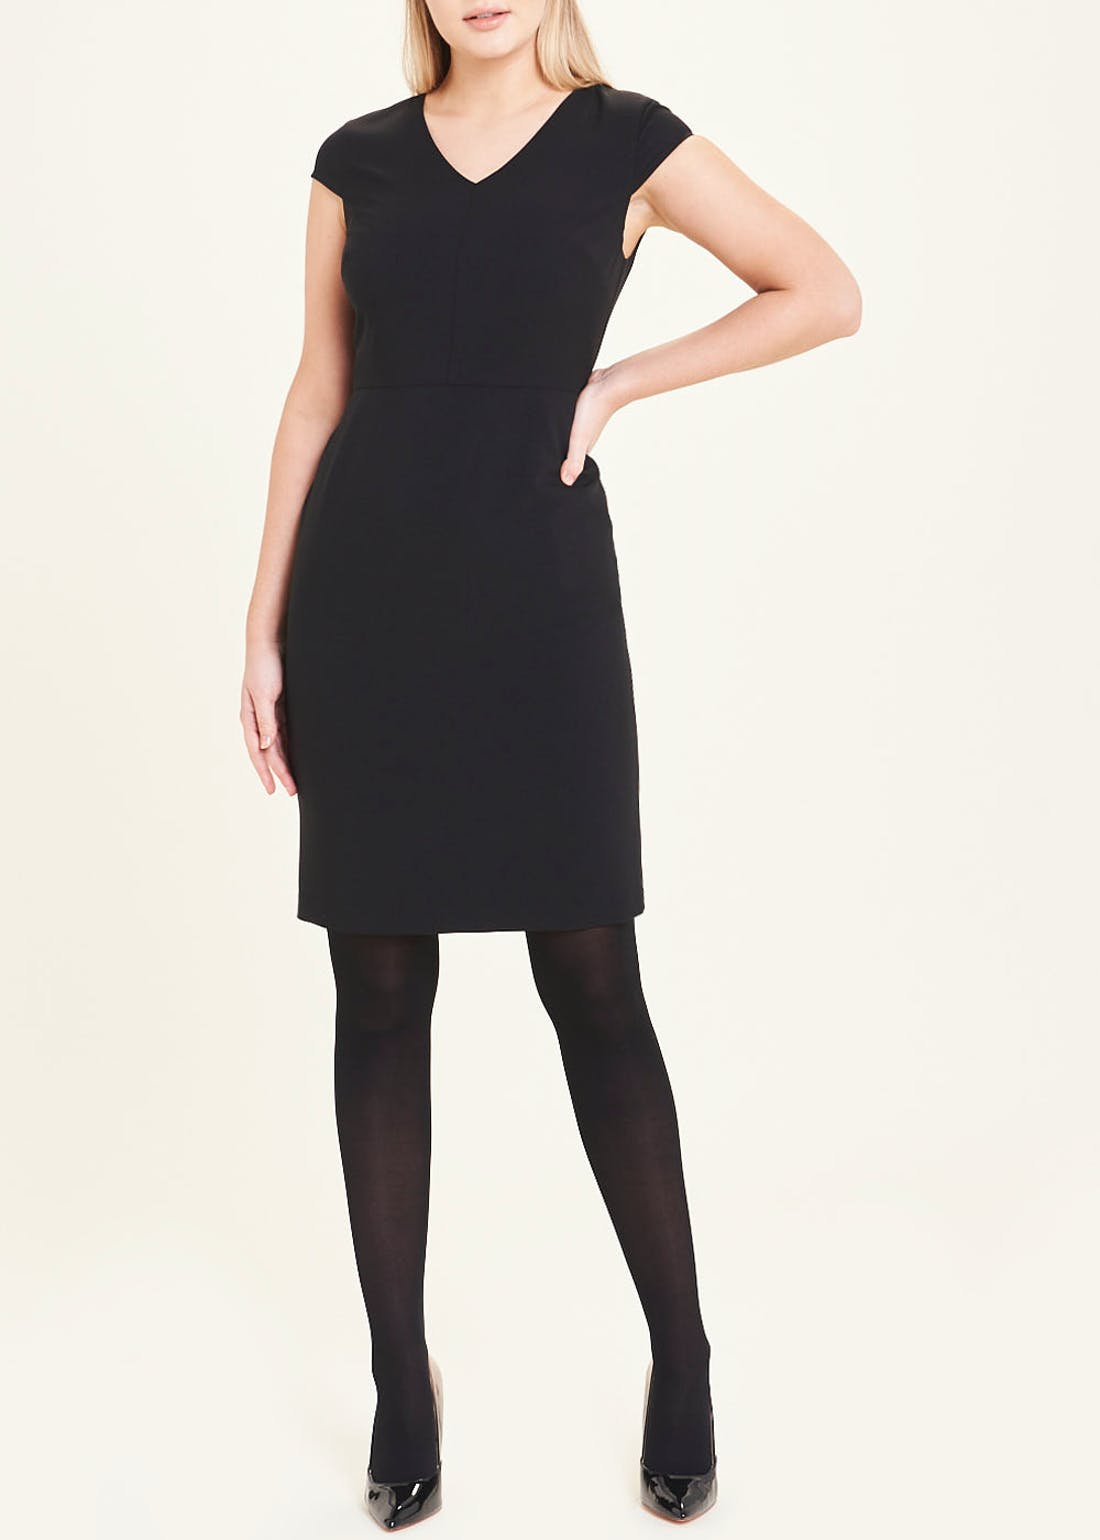 Black Cap Sleeve Bi-Stretch Suit Dress